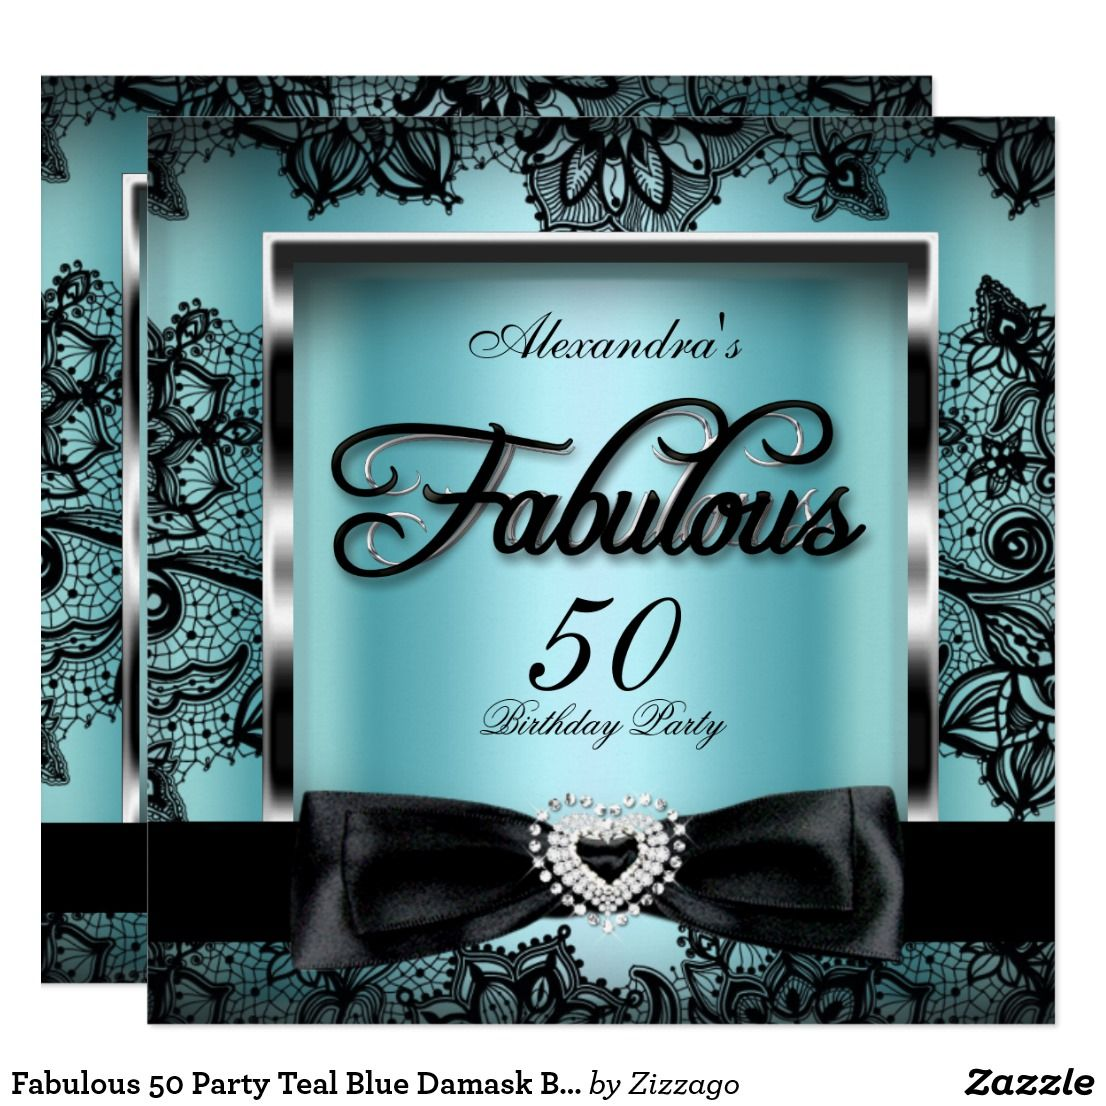 Fabulous 50 Party Teal Blue Damask Black Lace Invitation | Zazzle.com |  Lace invitations, 50th party, Teal invitations